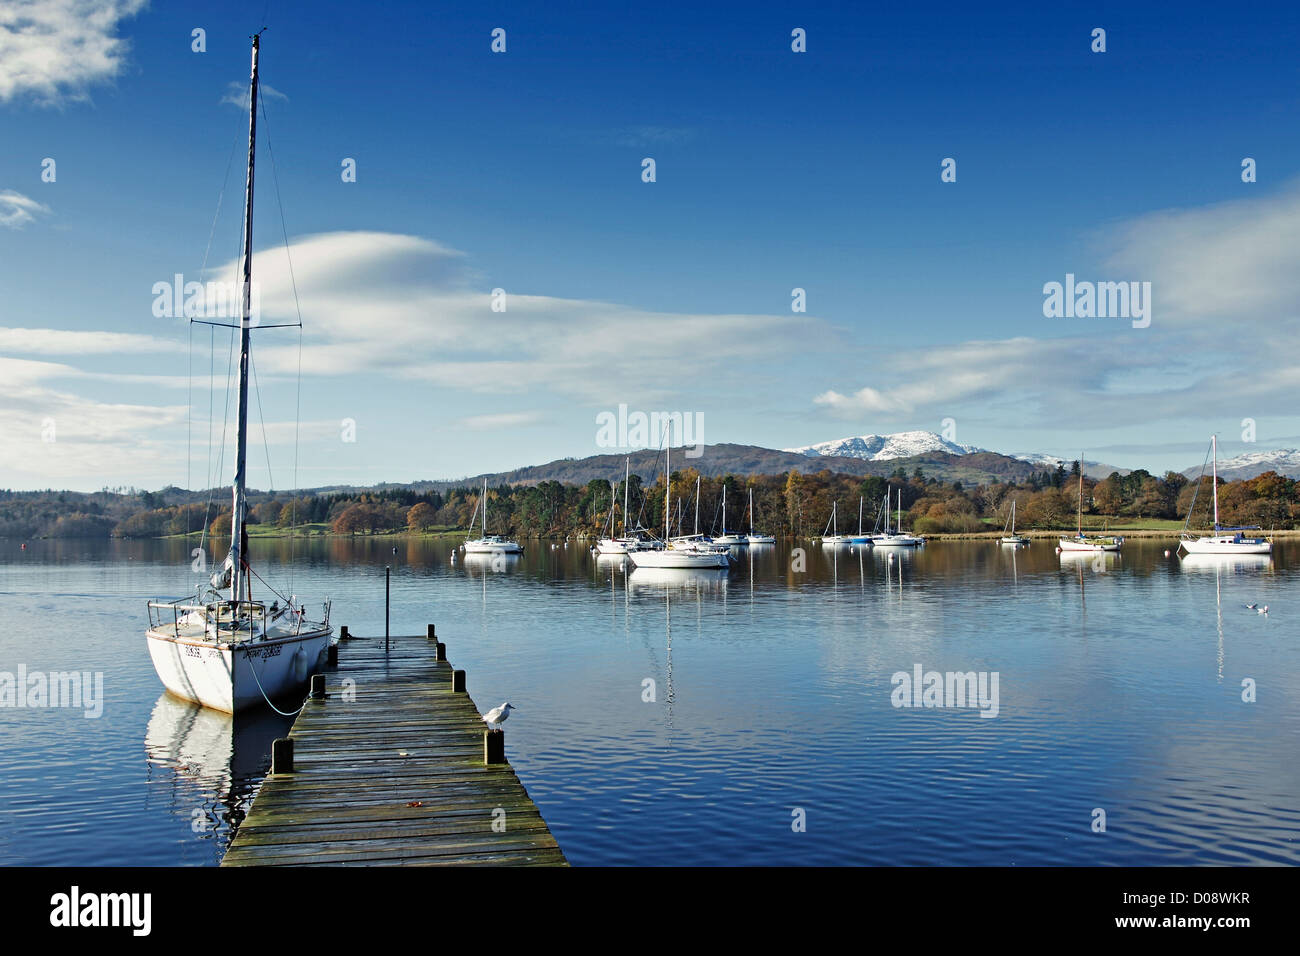 A yacht moored at a jetty in Waterhead, Ambleside on Lake Windermere in the Lake District National Park, England. - Stock Image